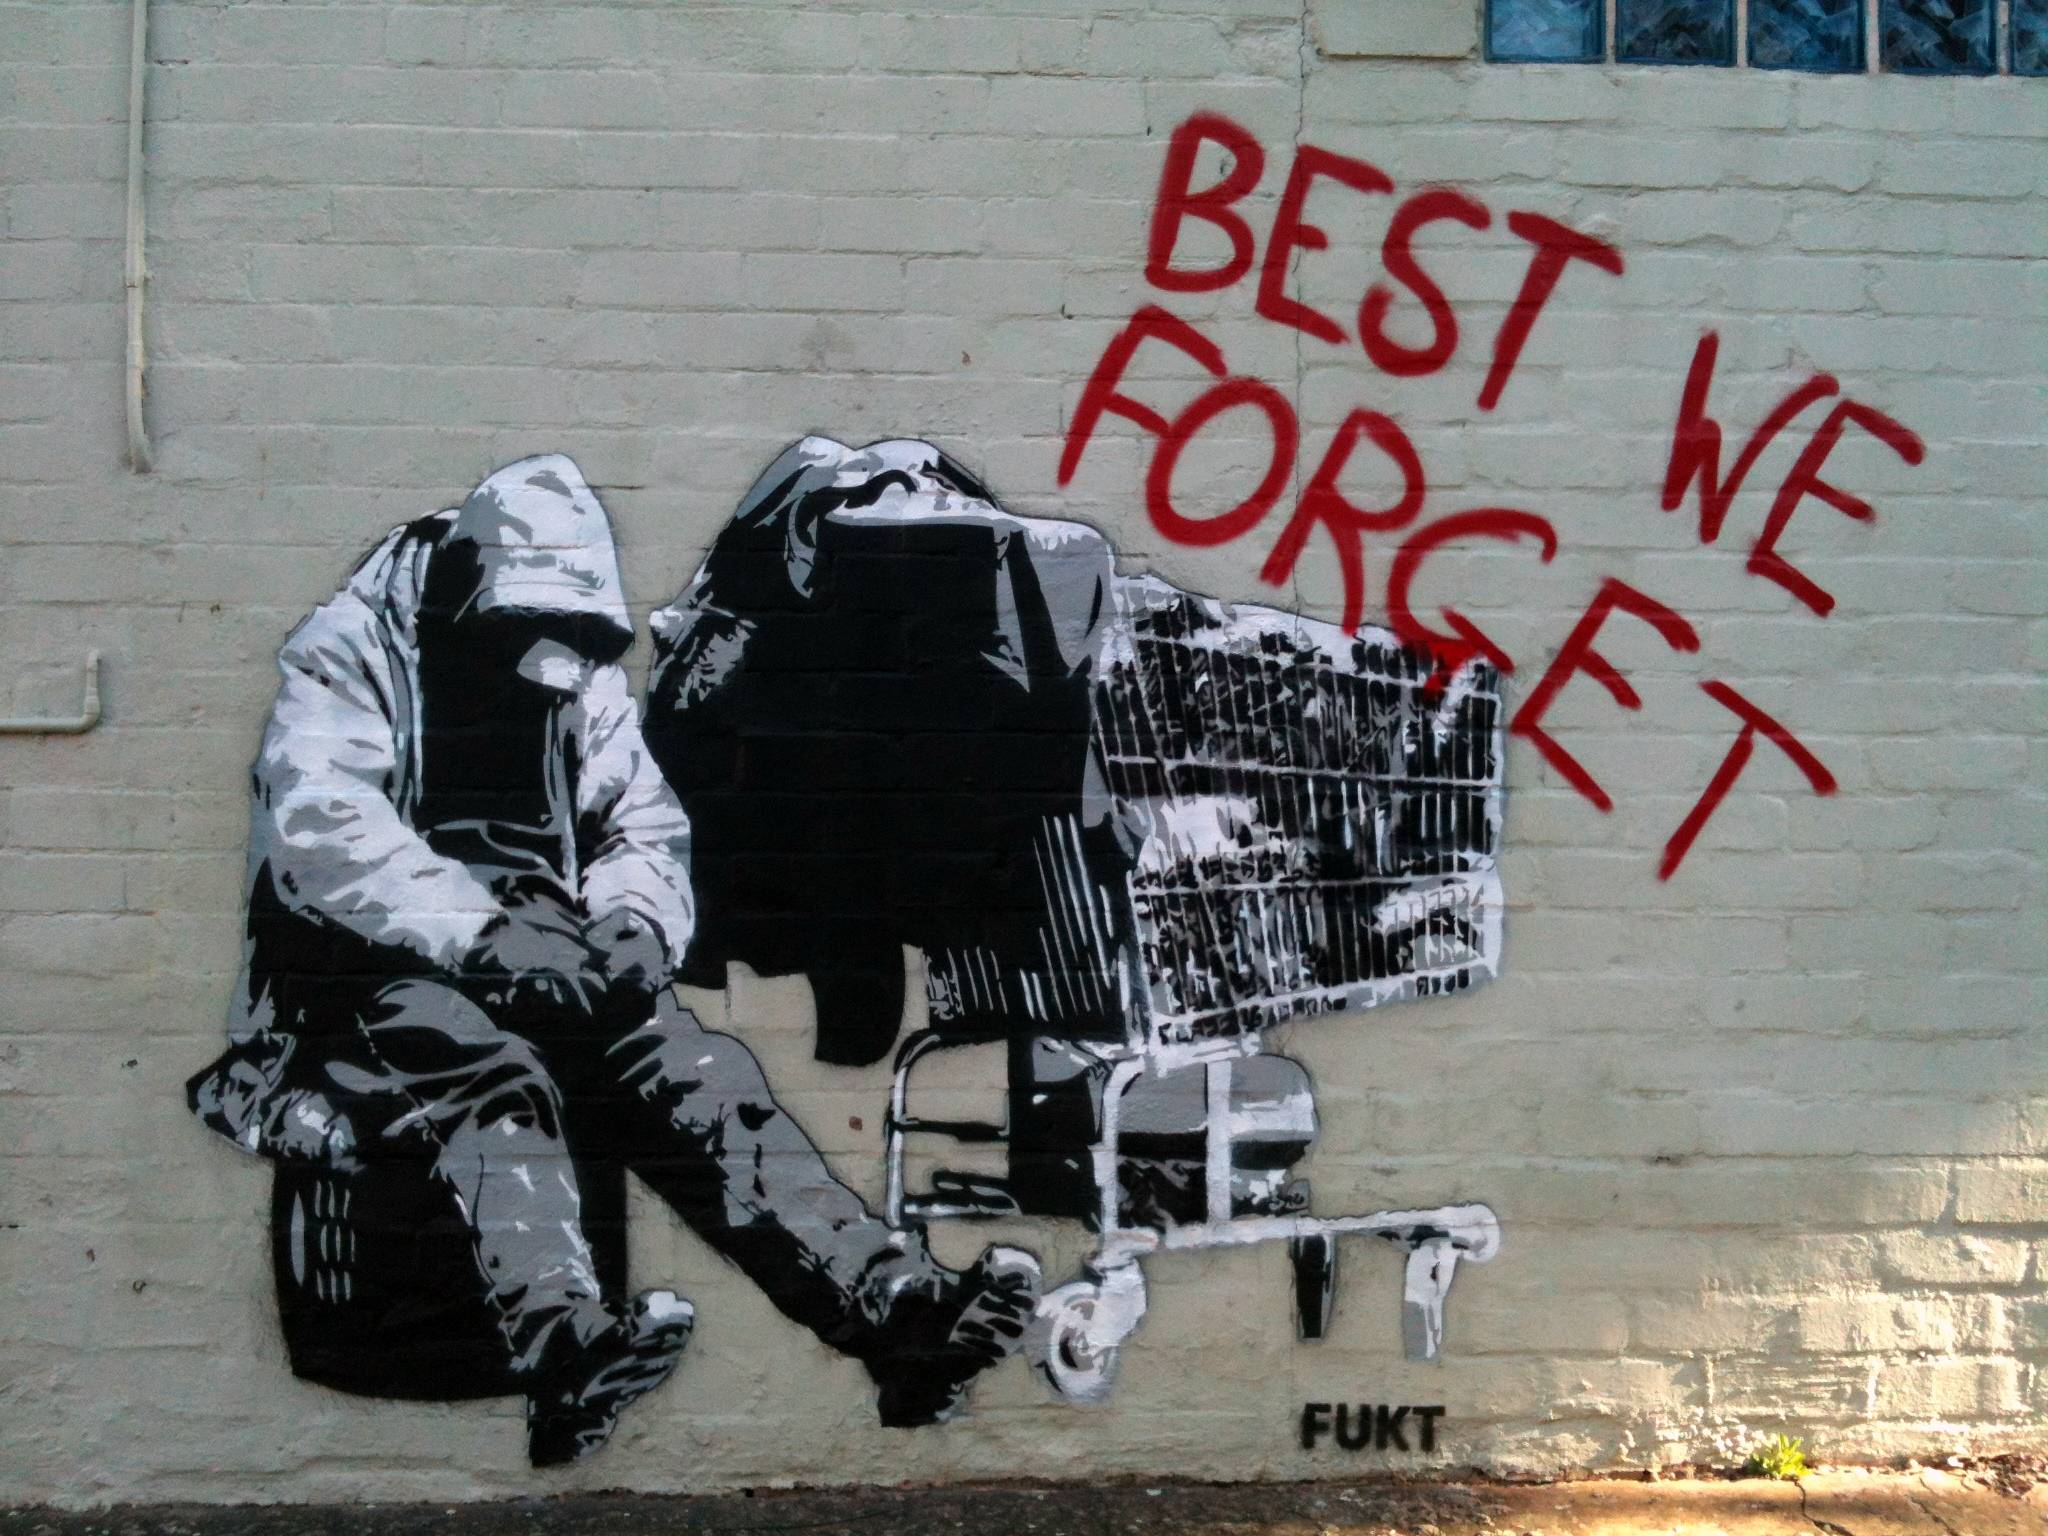 Best We Forget, homeless stencil in Camperdown, Sydney NSW : Graffiti